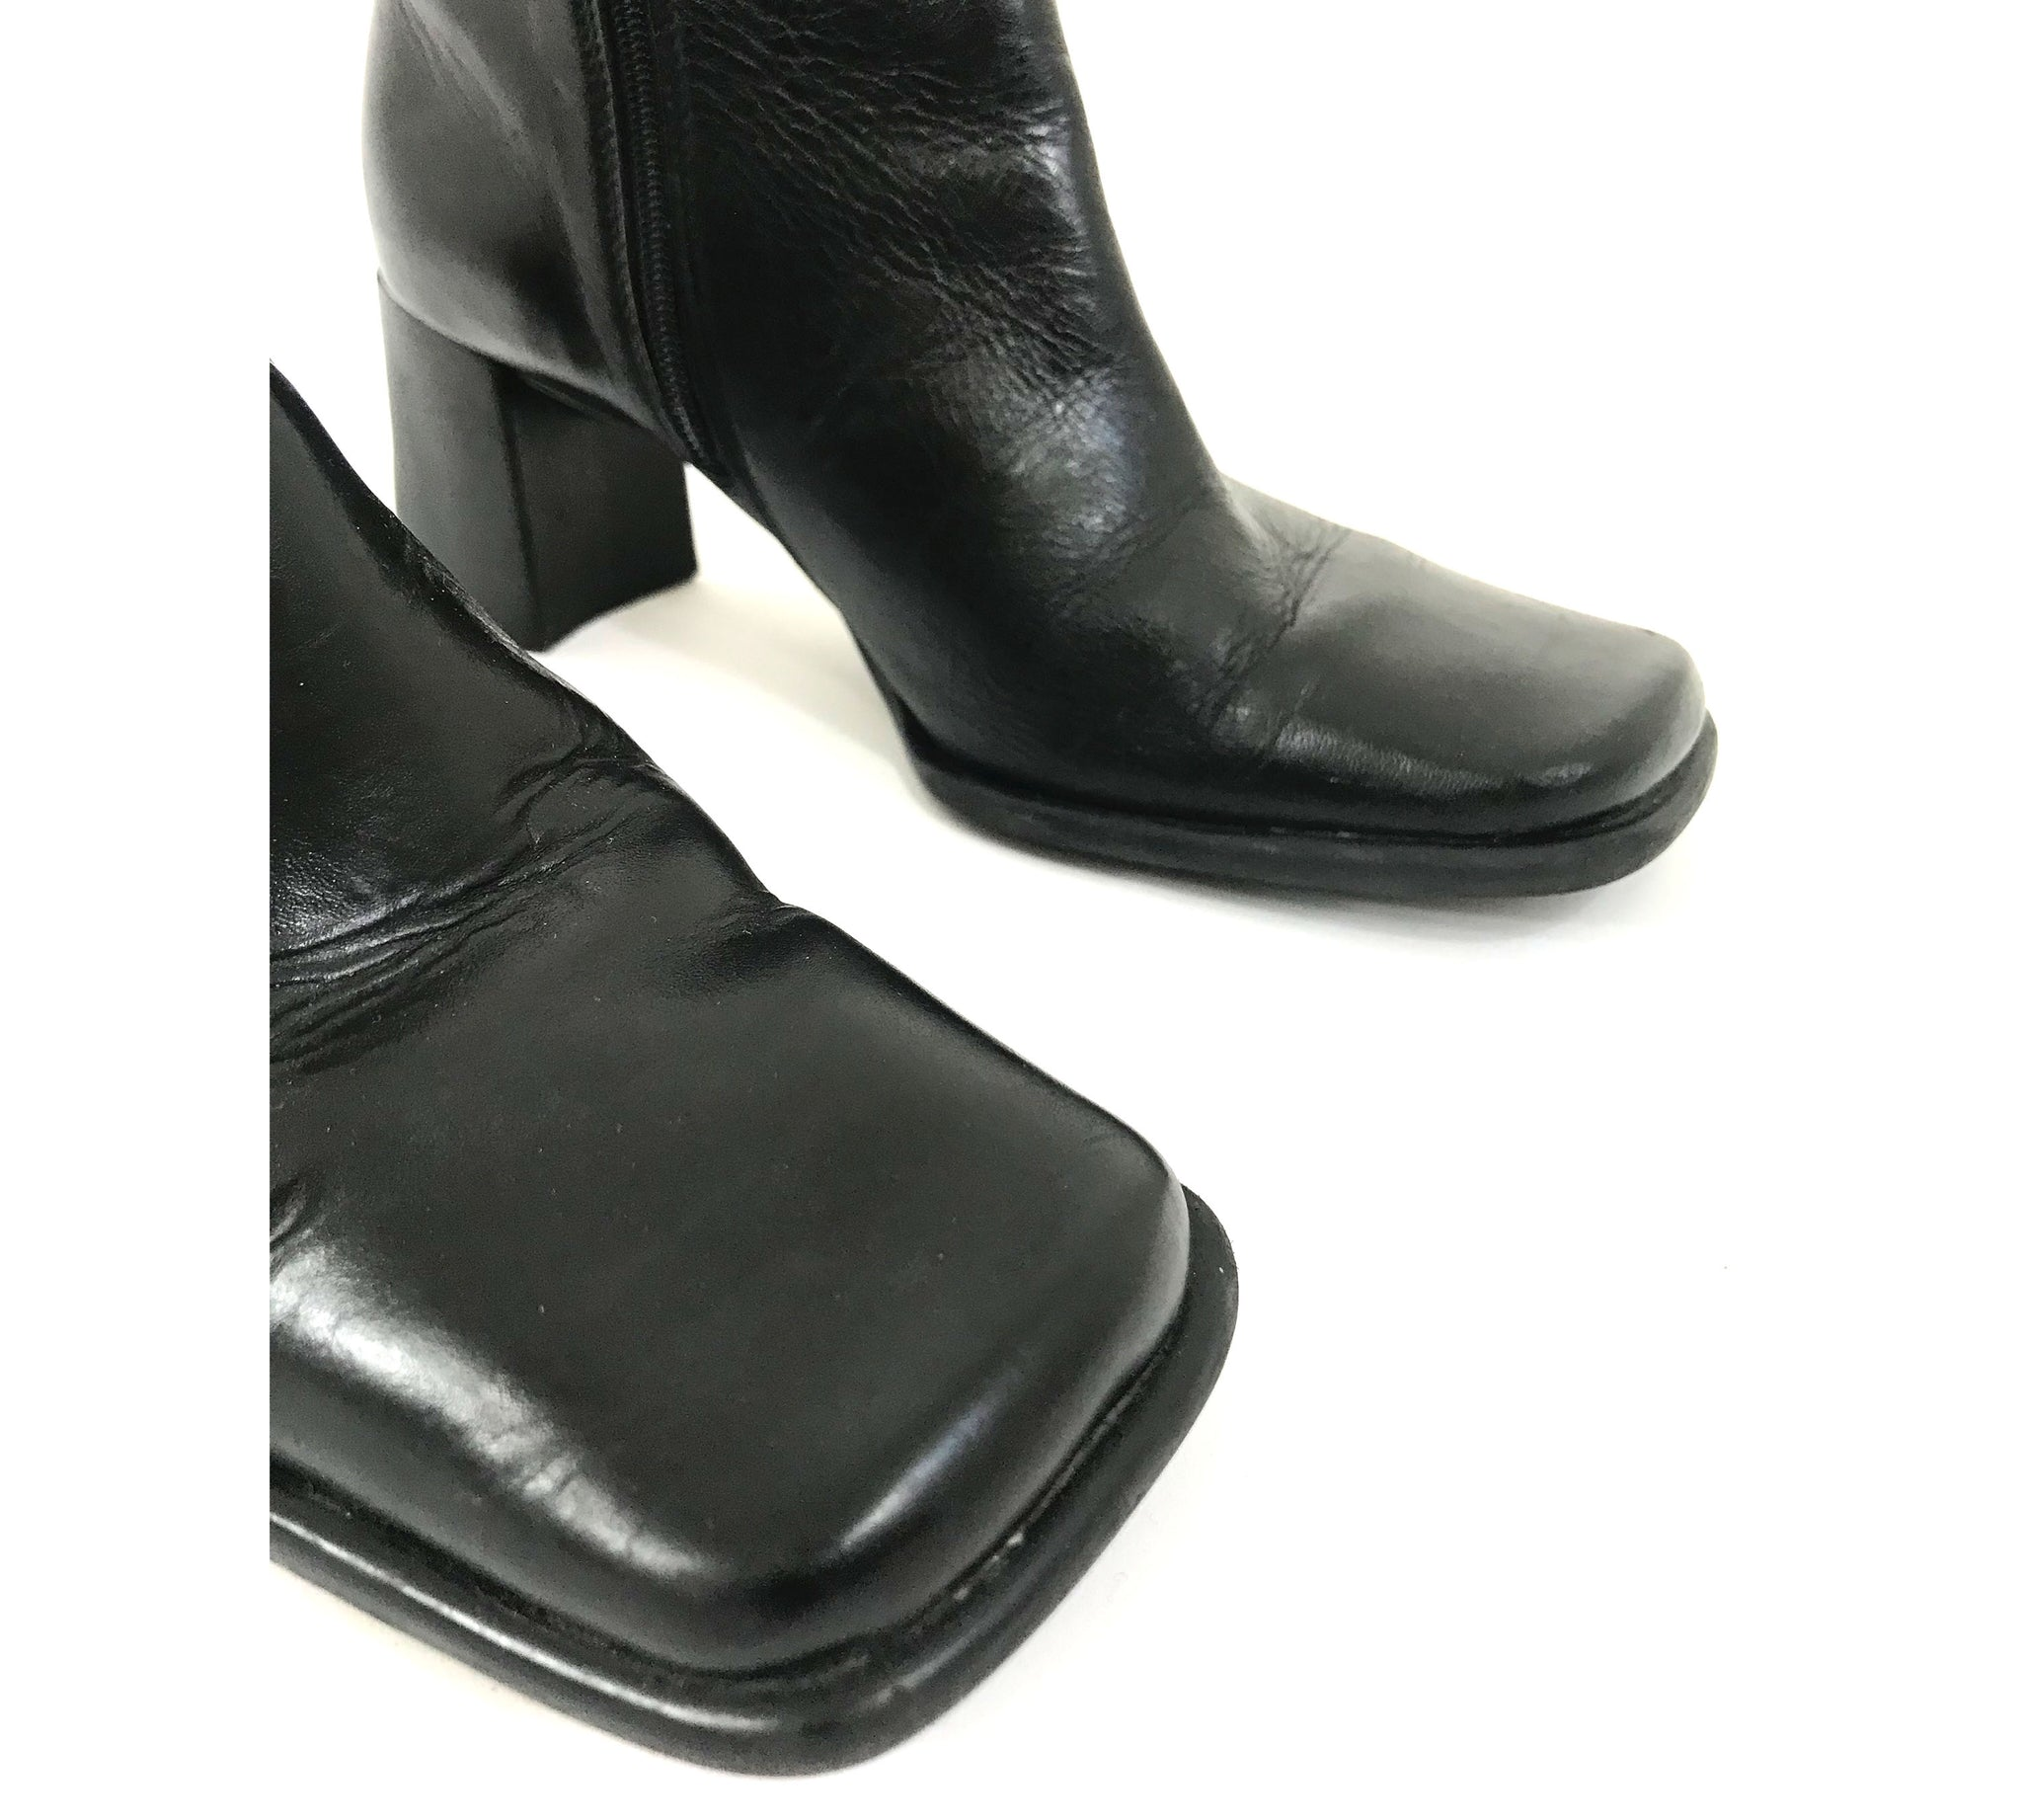 Square Toed Ankle Boots